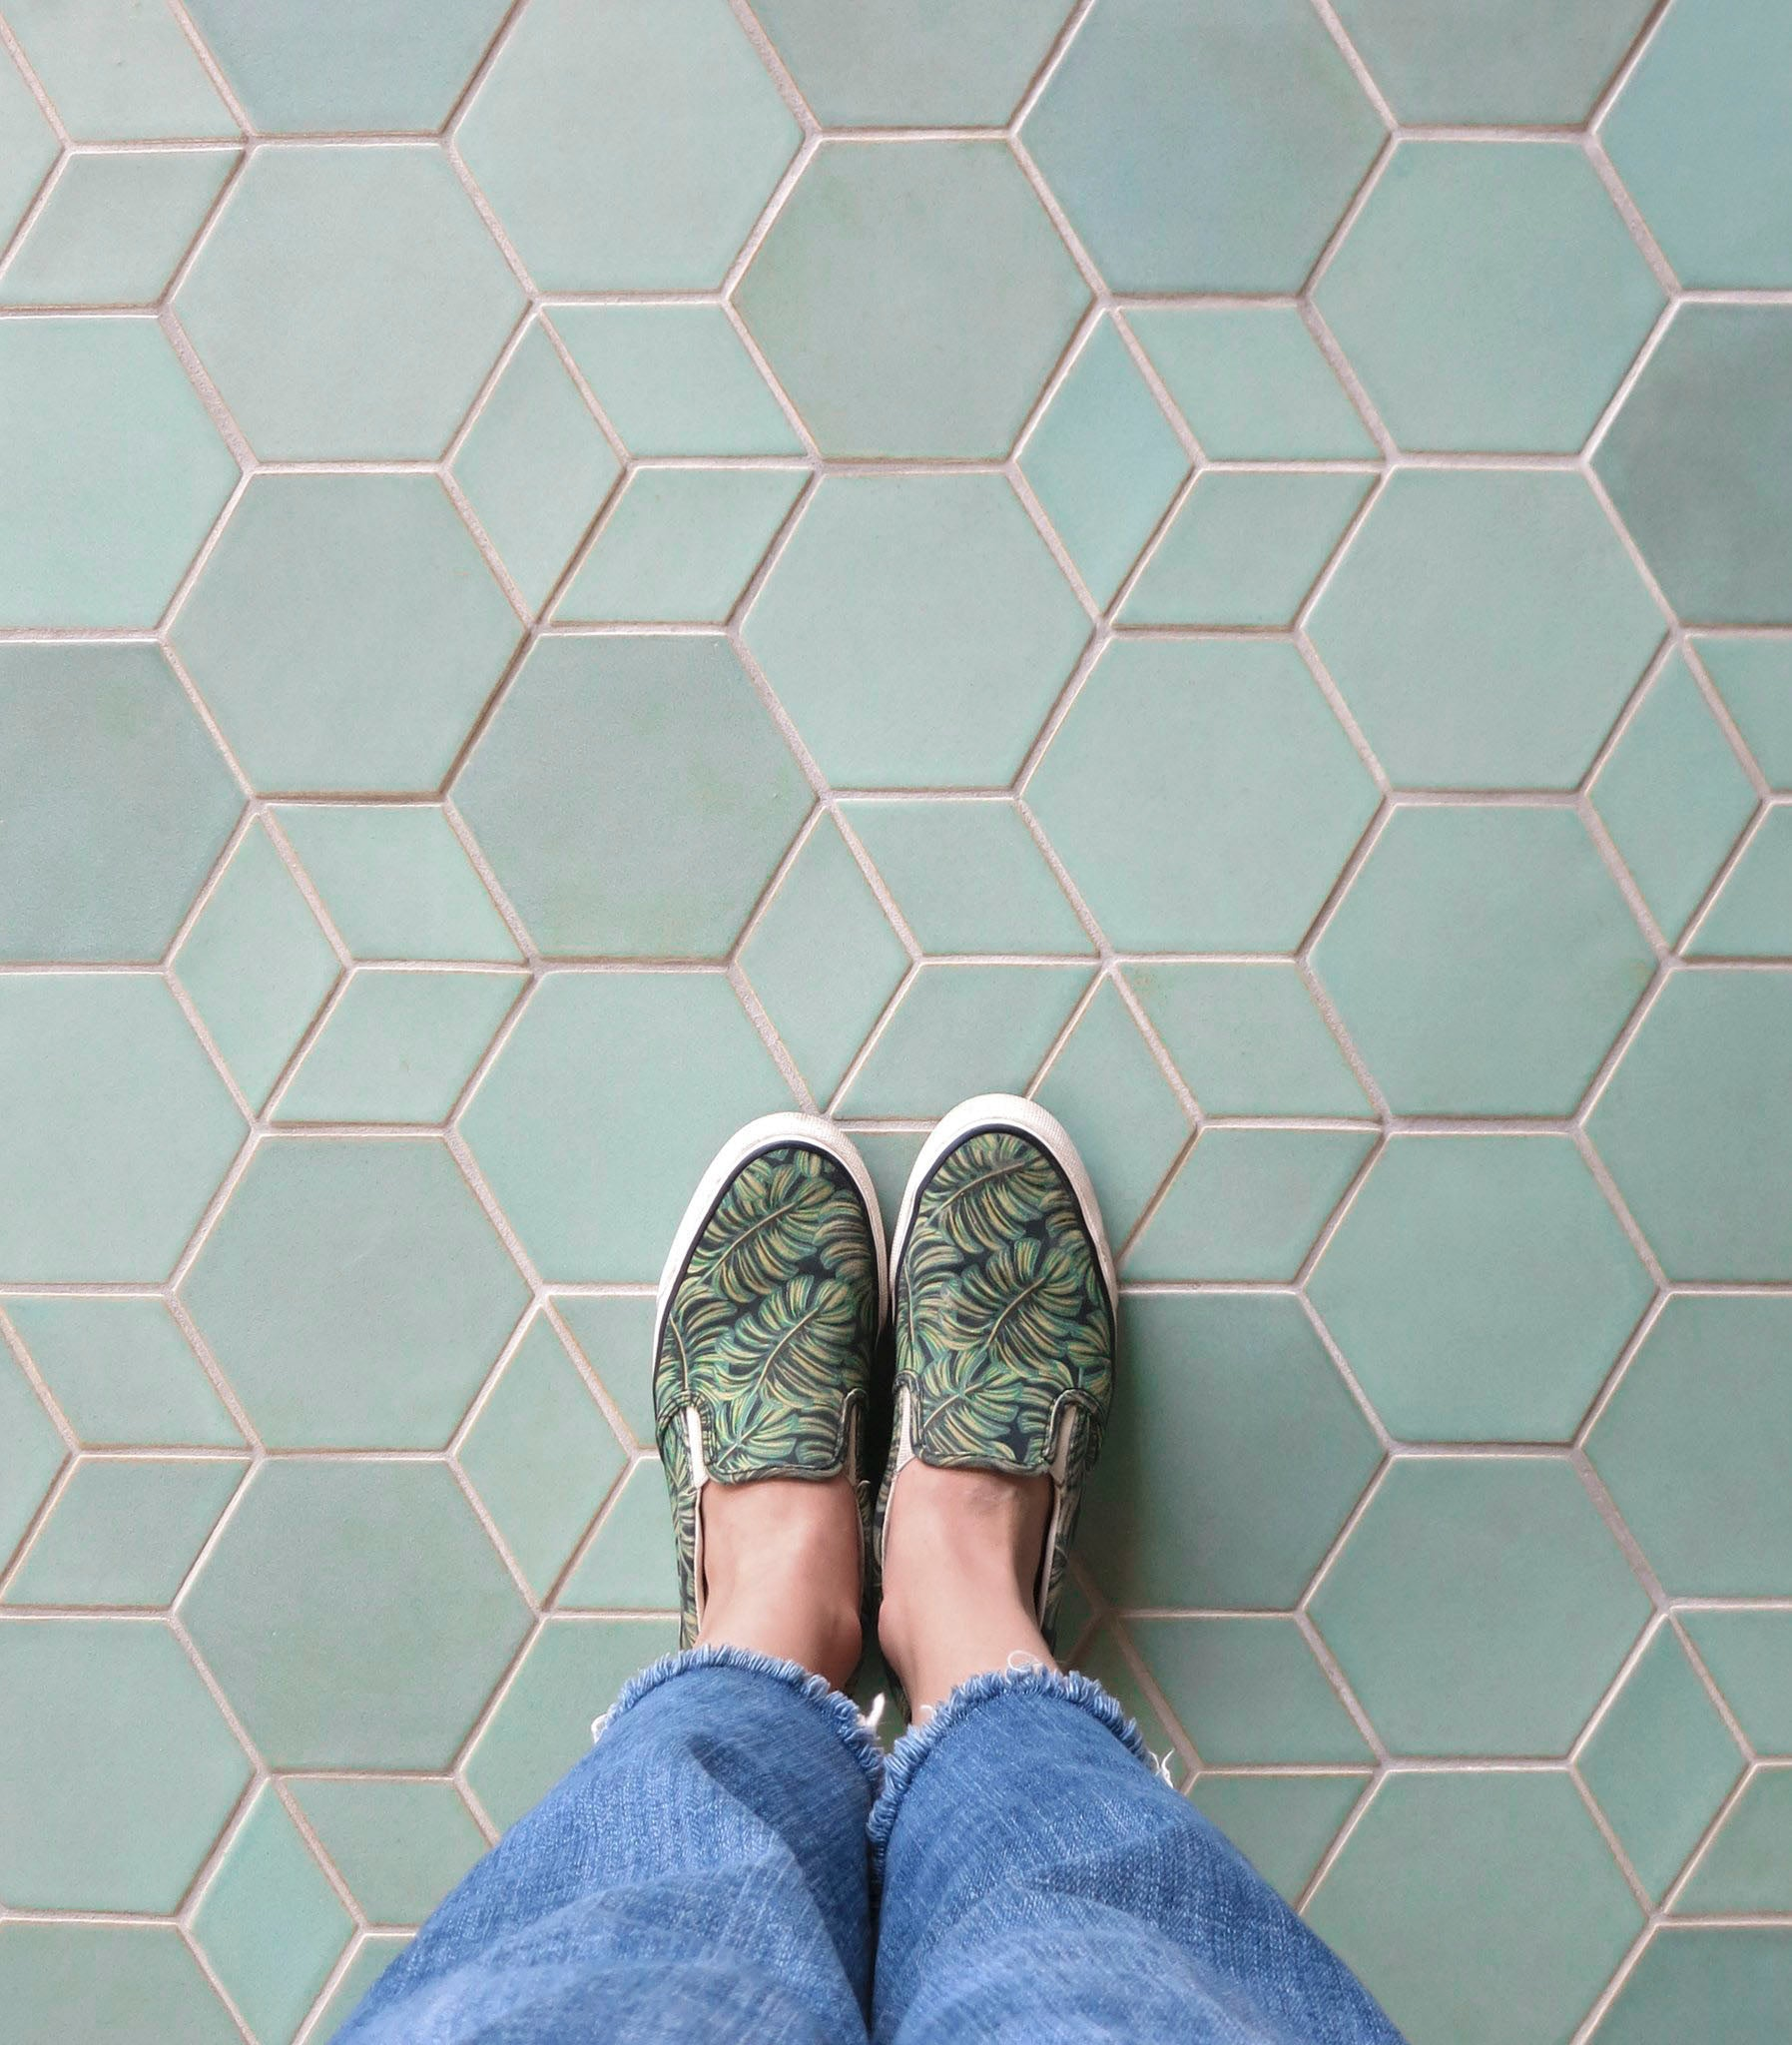 Mixed Shapes Unique Tile Floor Idea